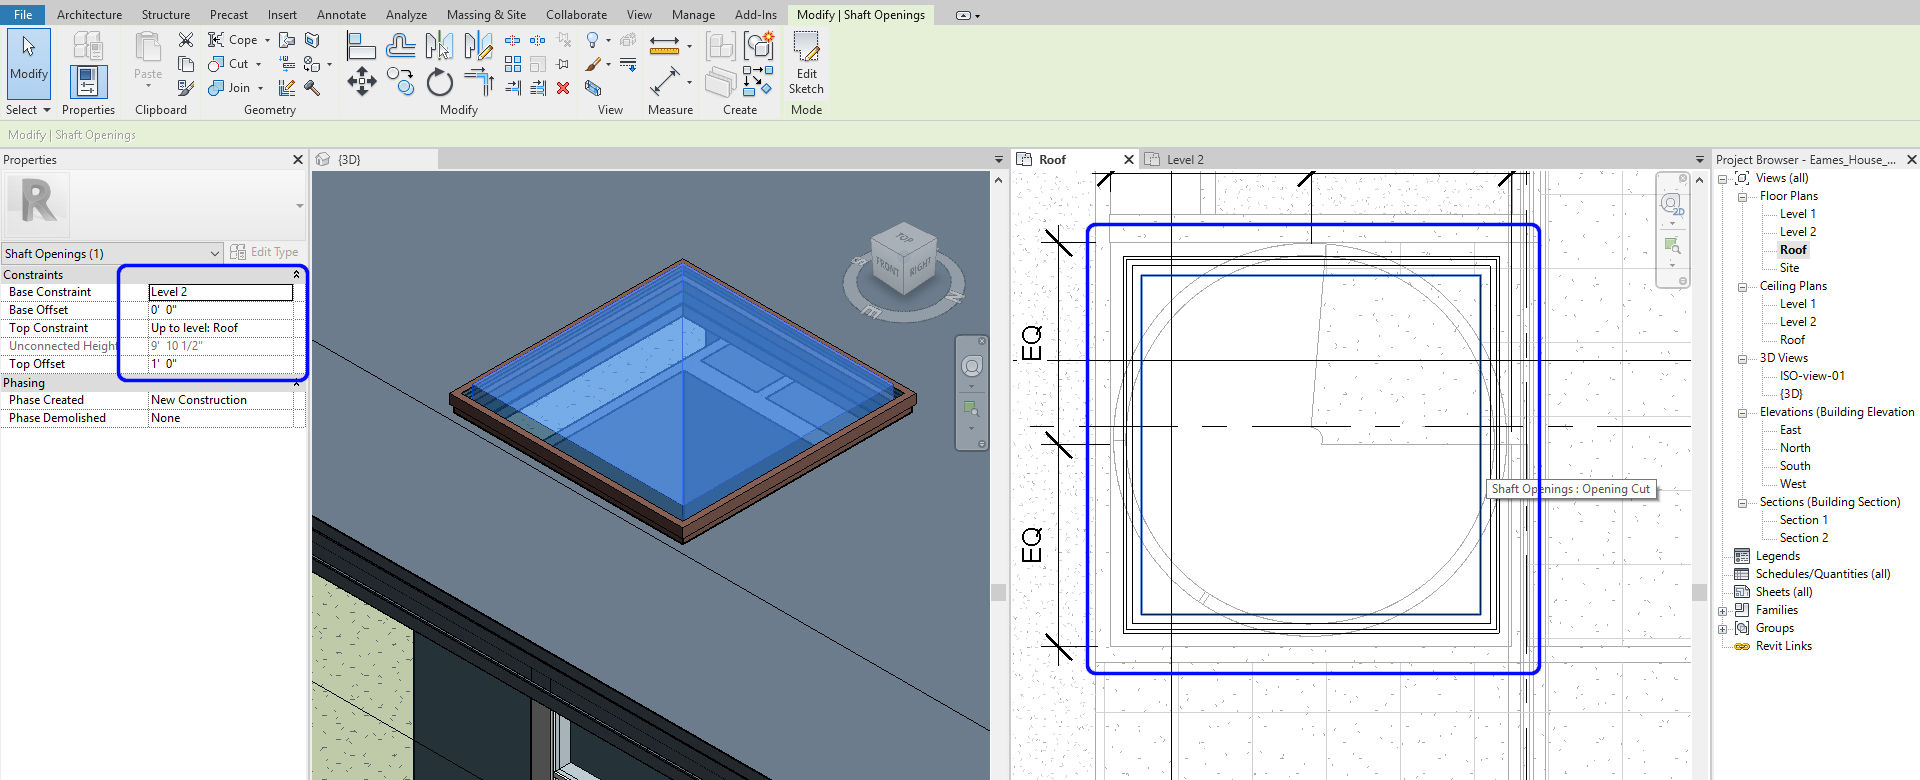 It shows the resulting image after using the shaft tool for a skylight.